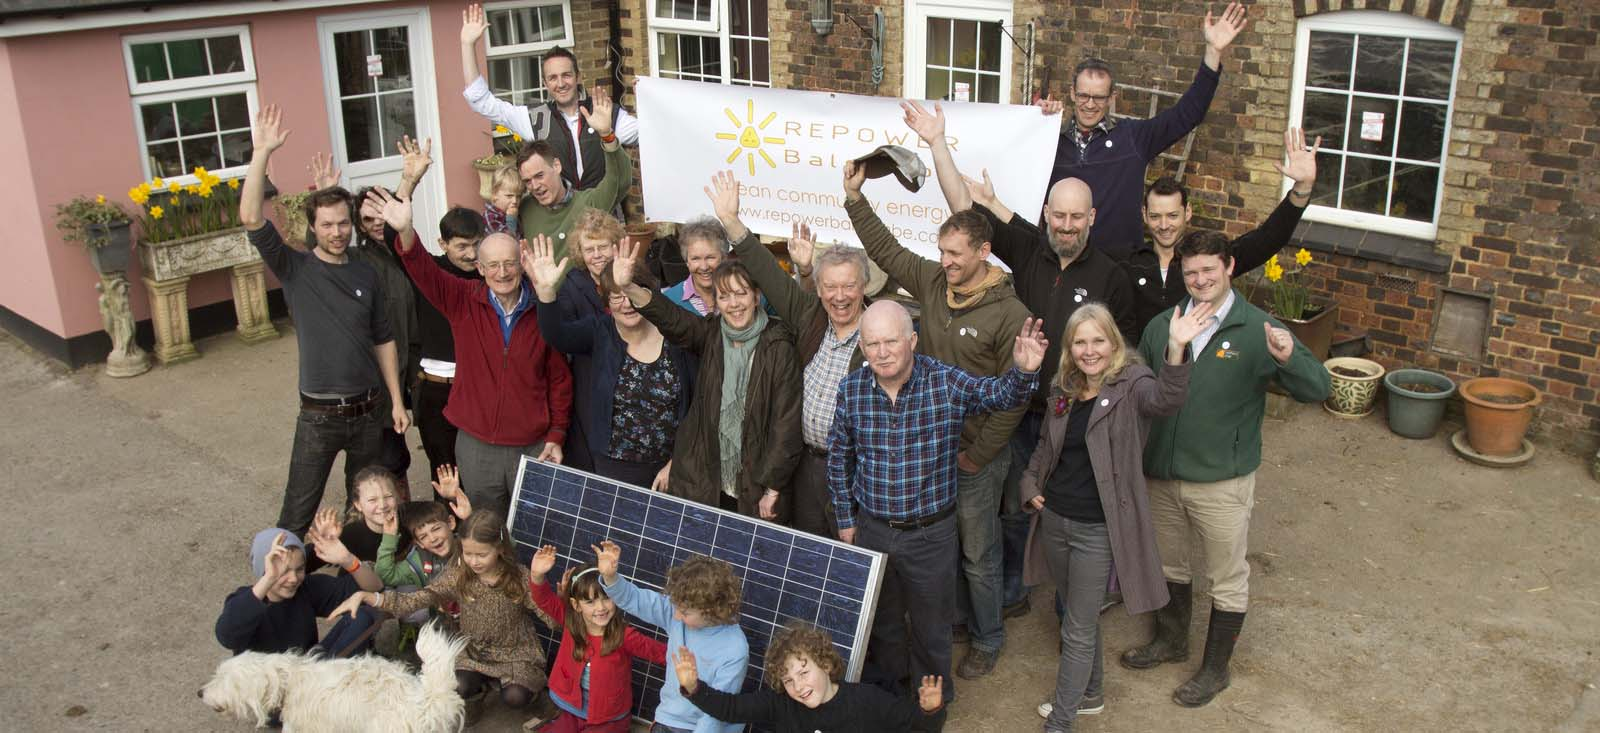 Welcome to RePOWER Balcombe